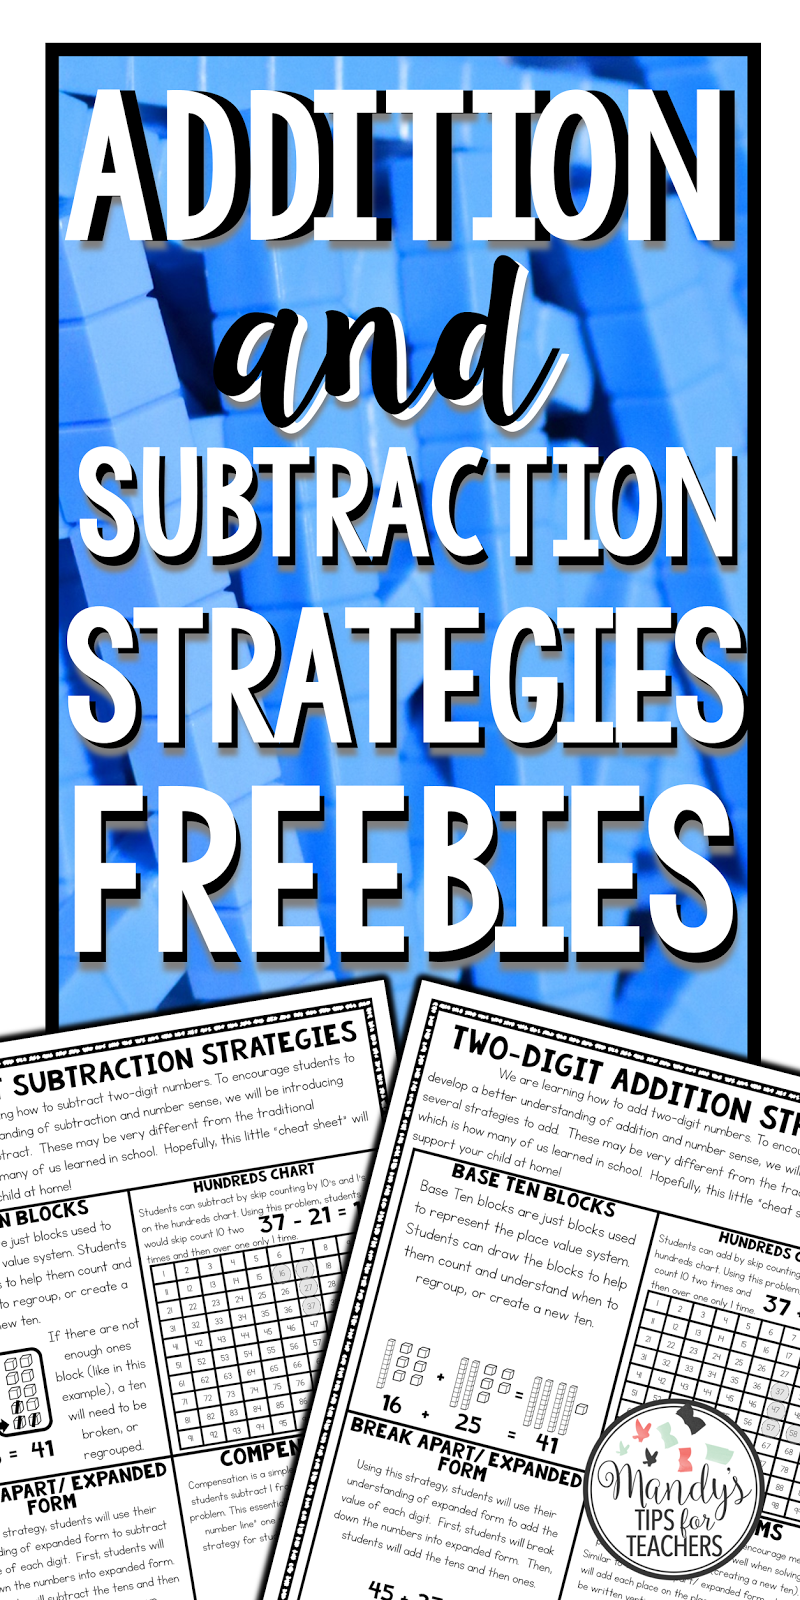 Addition and Subtraction Strategies FREEBIE! - Mandy\'s Tips for Teachers